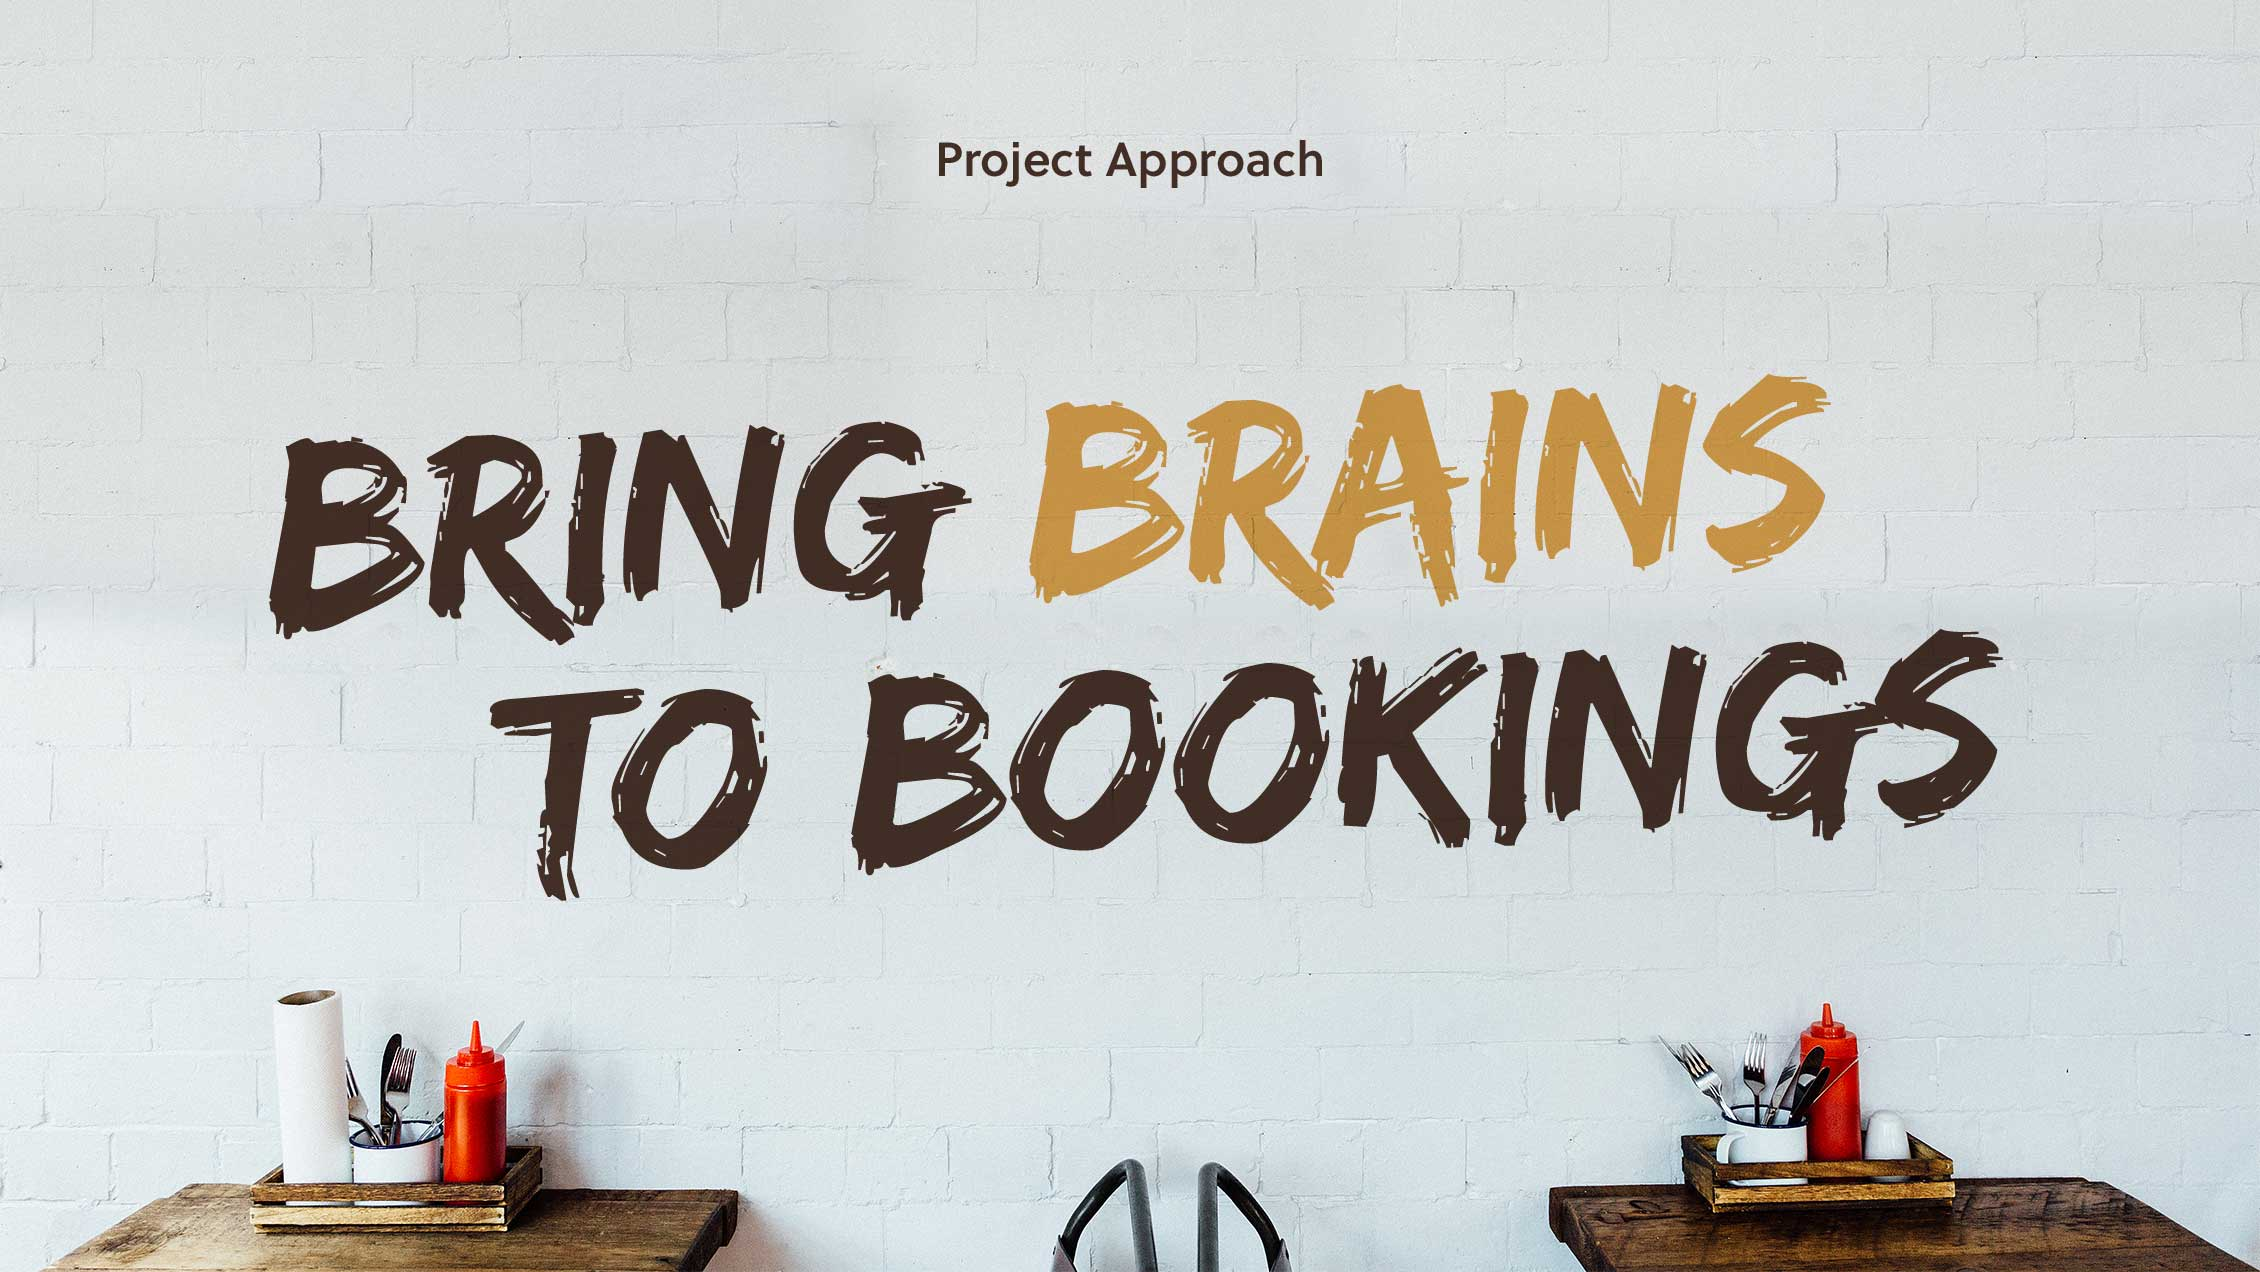 Fat Hippo Booking System Project Approach: 'Bring Brains to Bookings'